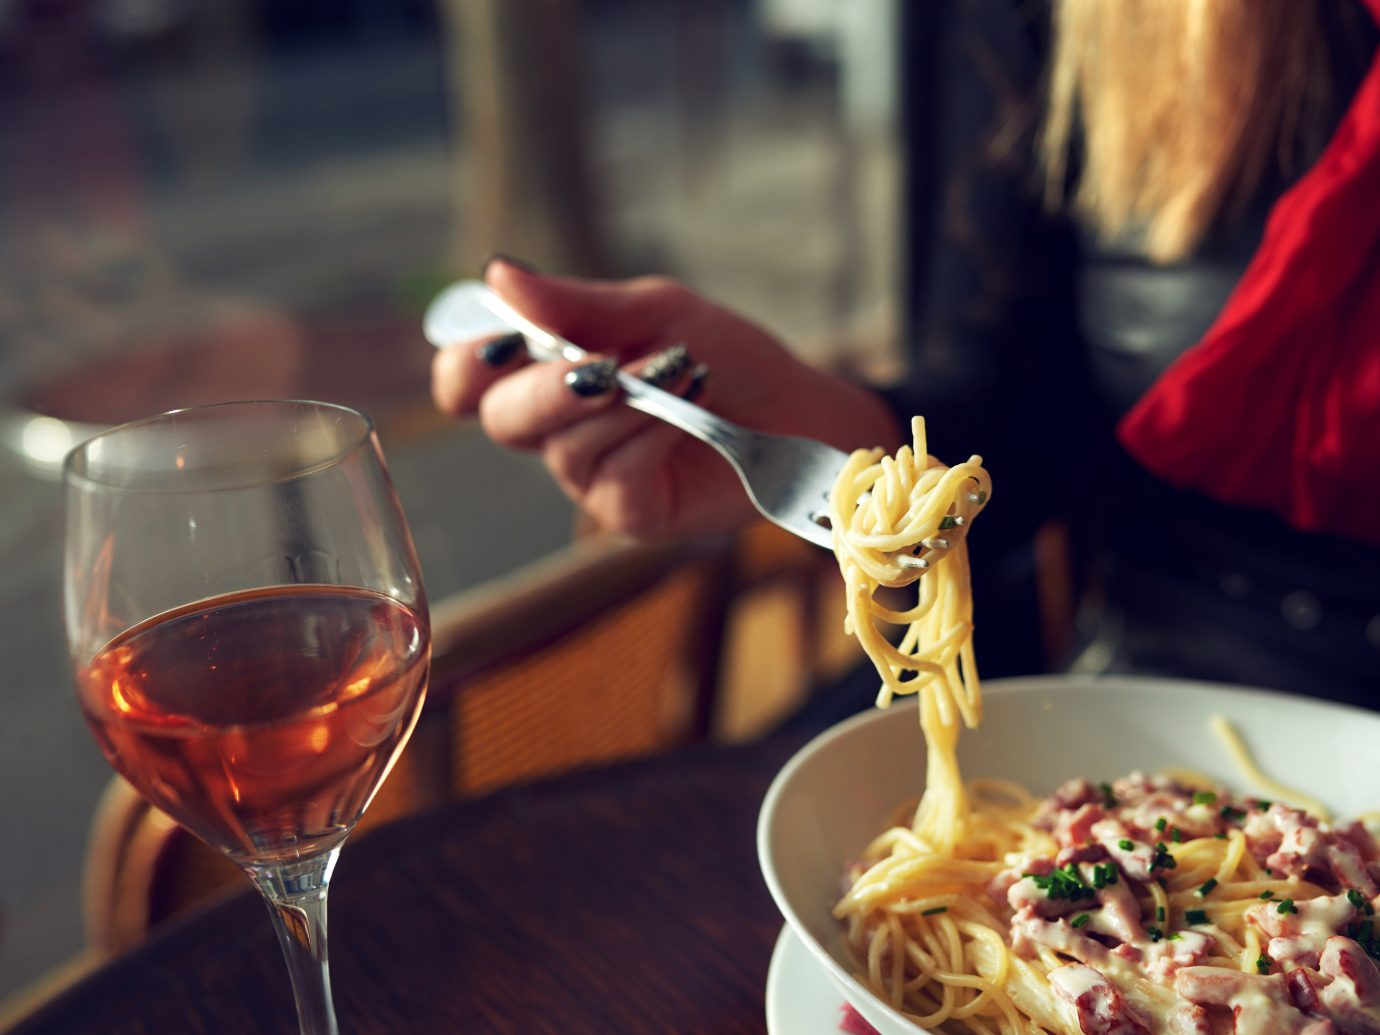 Style + Design person table color food wine woman red meal Drink restaurant sense